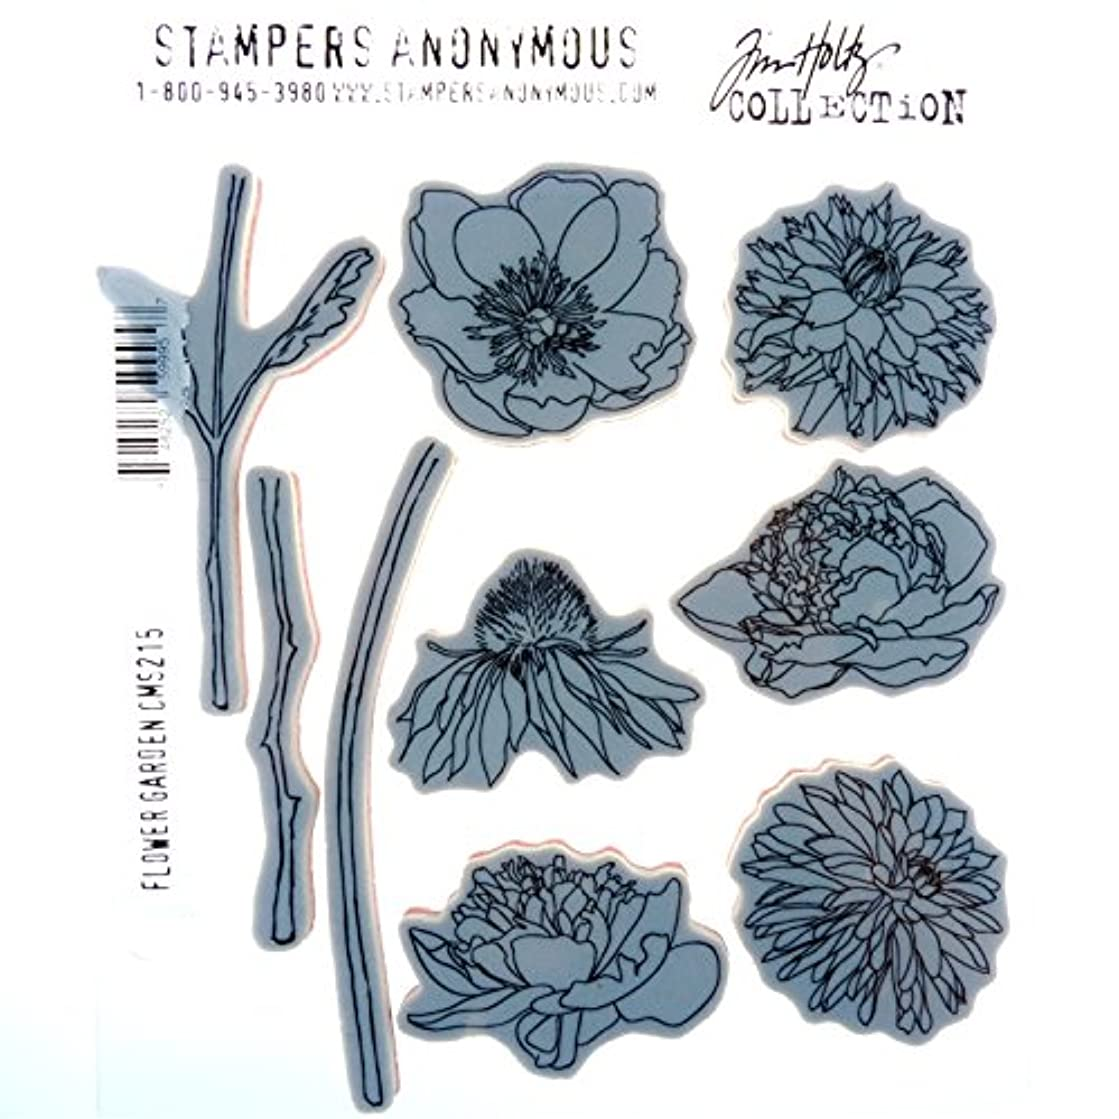 Stampers Anonymous Tim Holtz Cling Rubber Flower Garden Stamp Set, 7 x 8.5